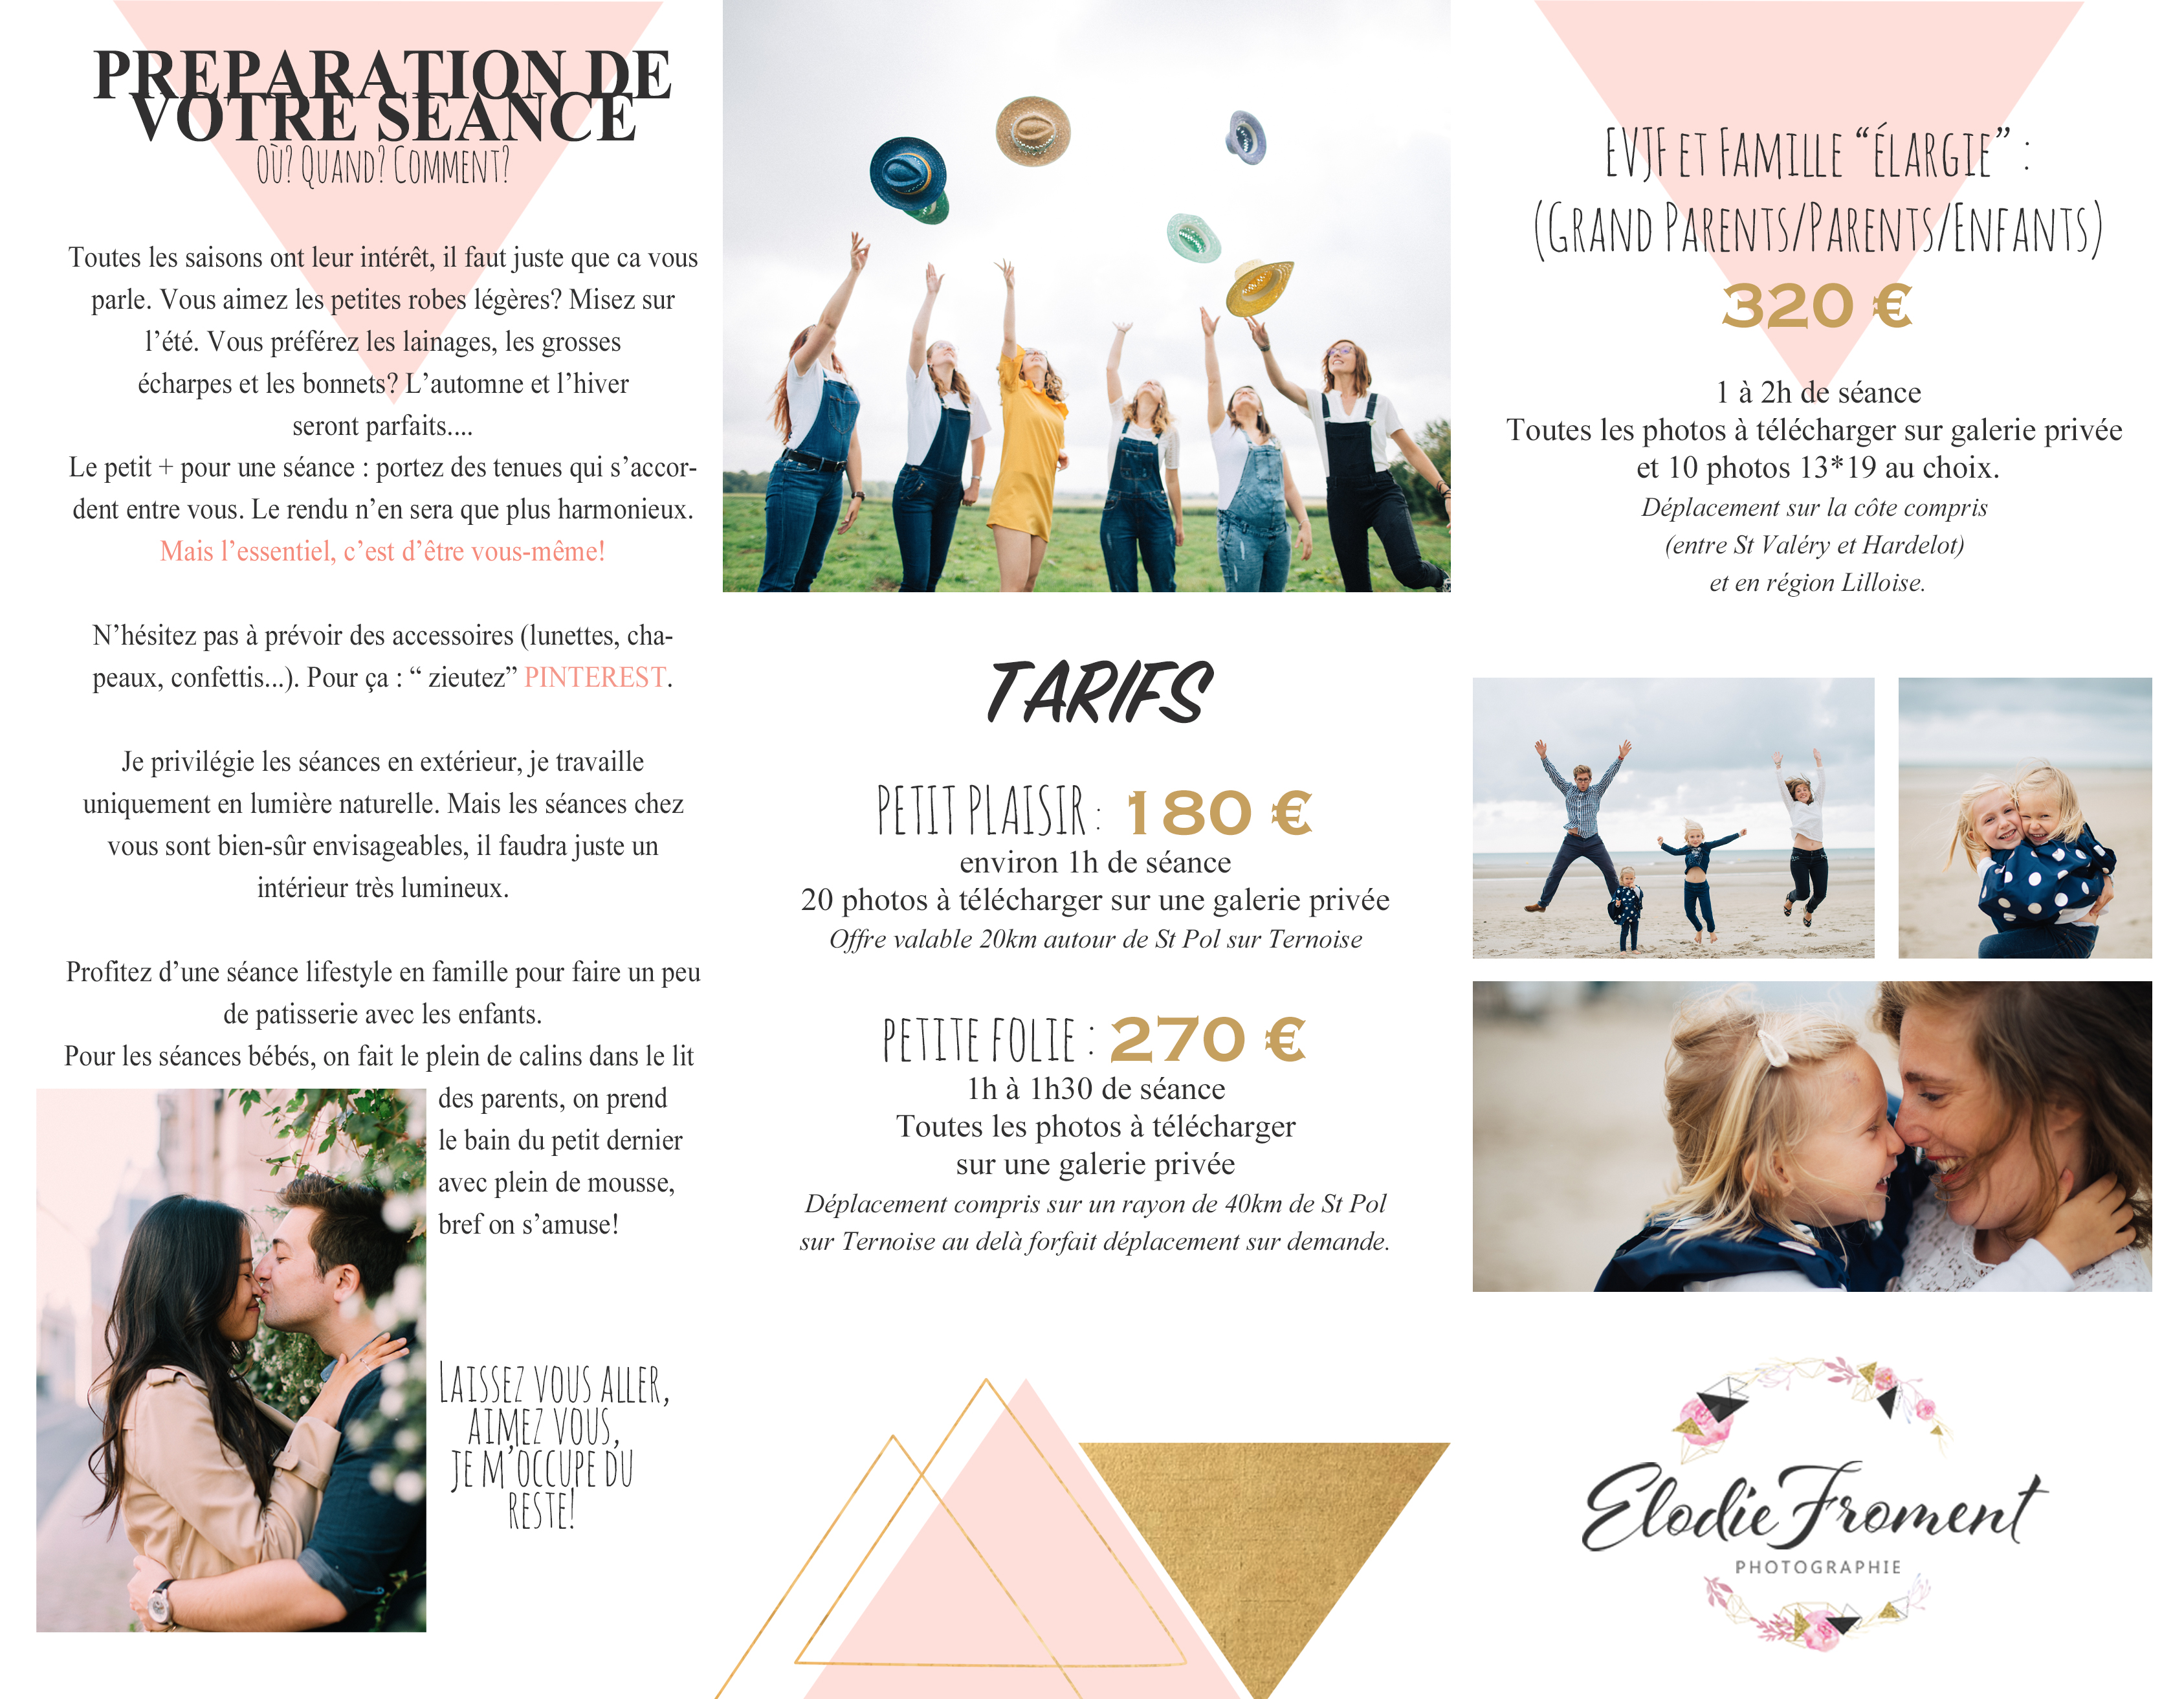 Tarifs Elodie Froment Photographie